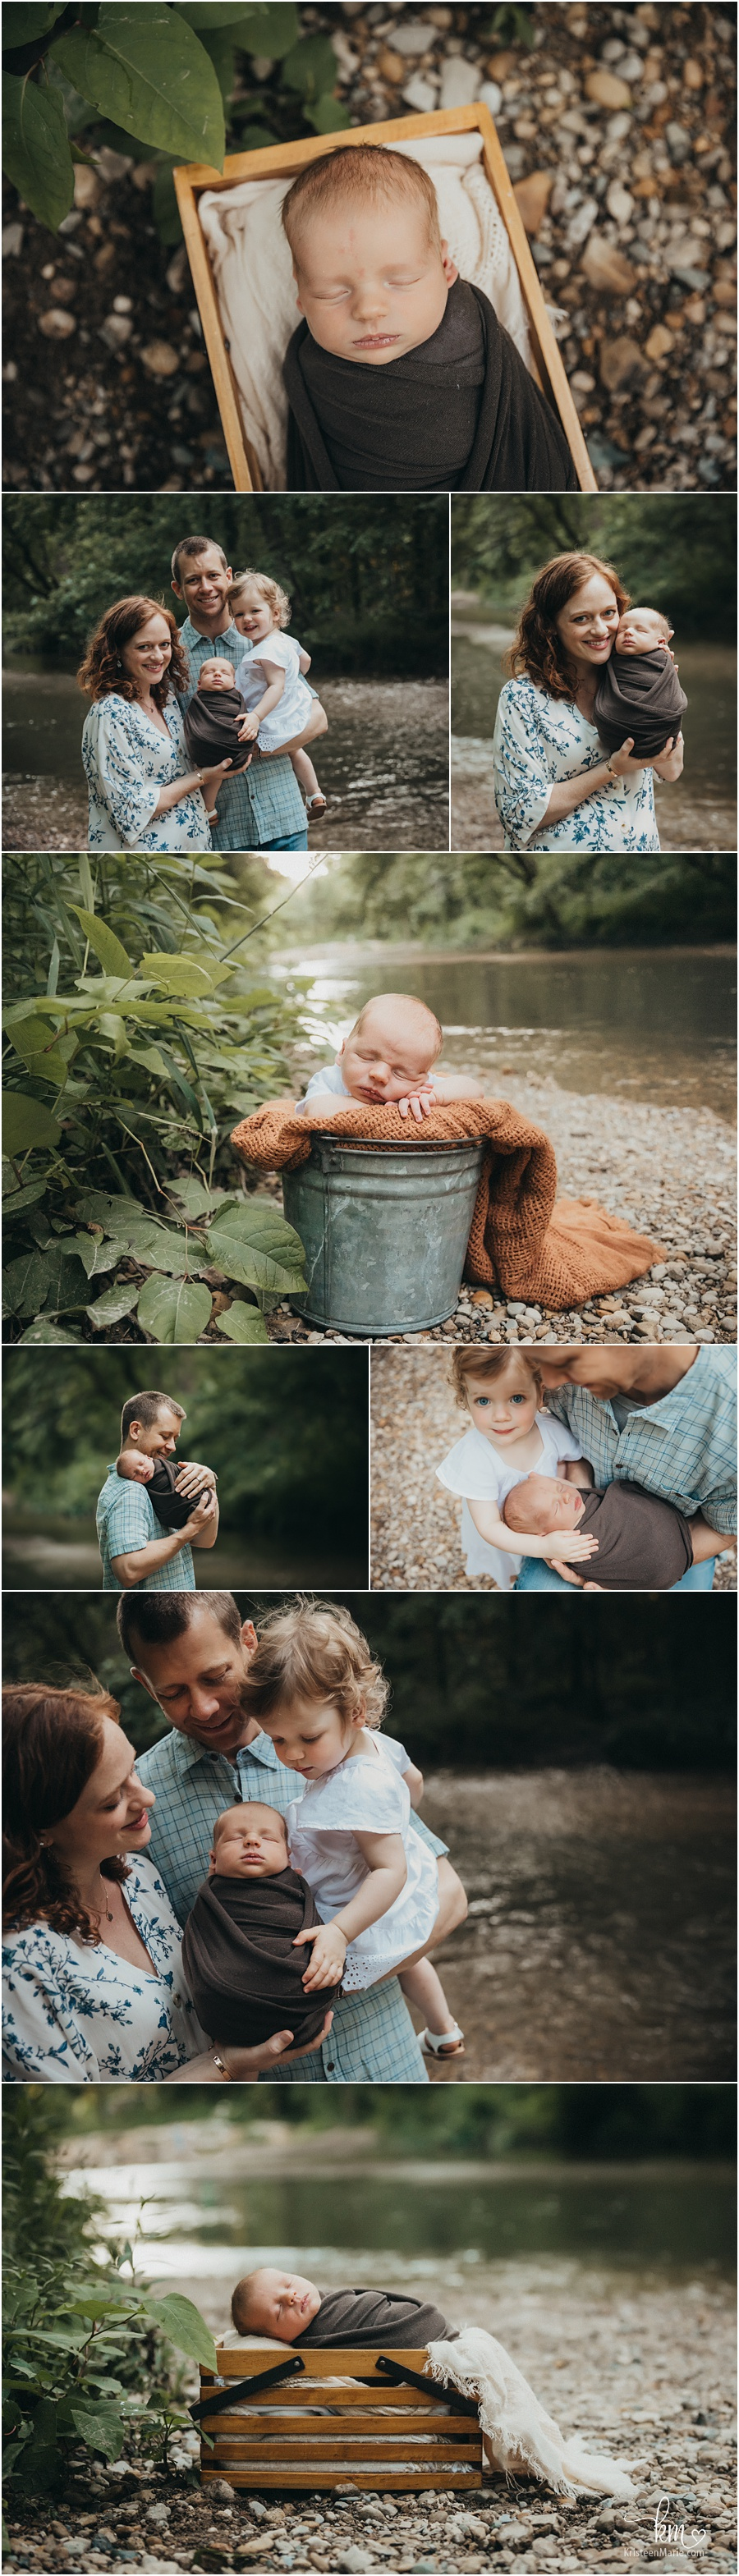 outdoor newborn photography at creek - baby in box and bucket